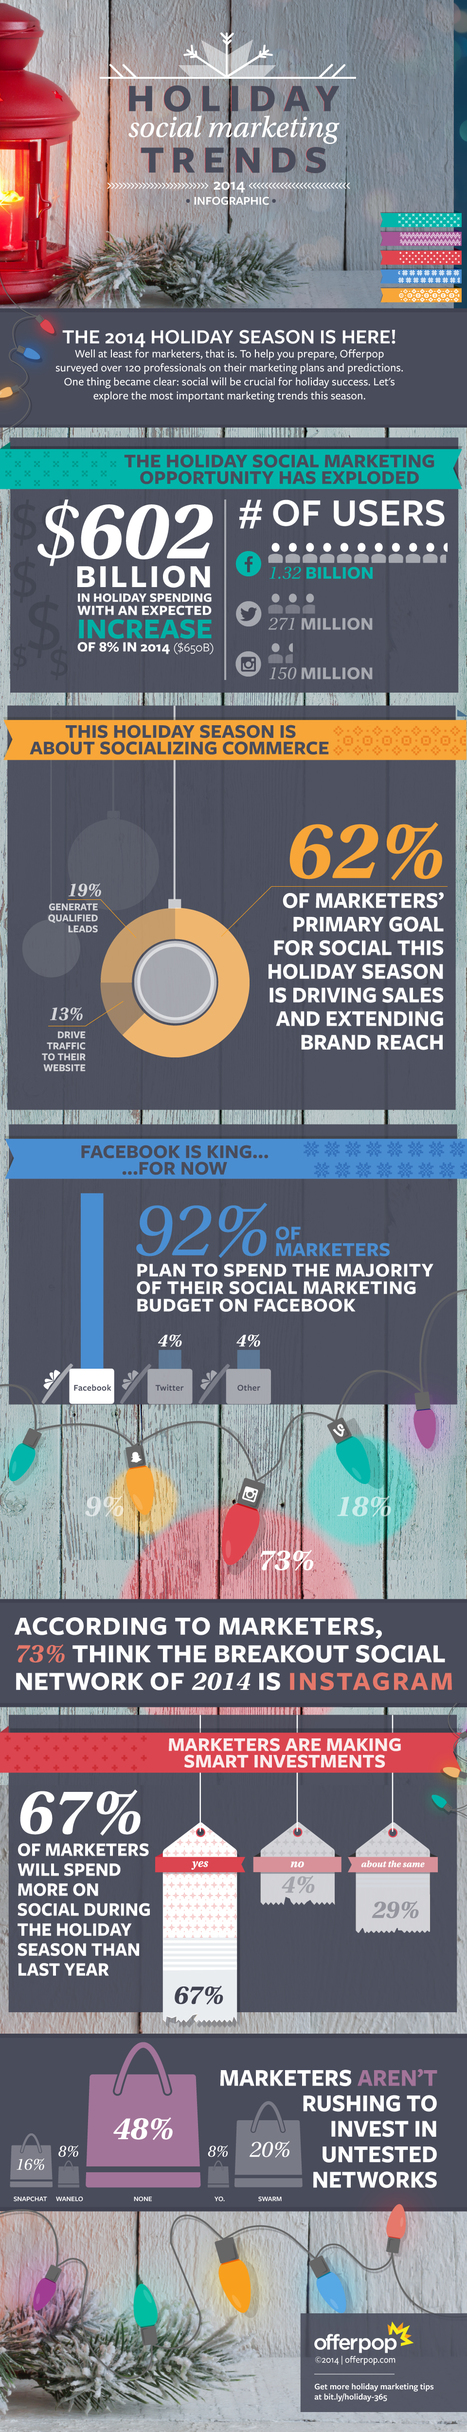 Where Are Marketers Planning to Spend Their Holiday Budgets? [Infographic] | MarketingHits | Scoop.it